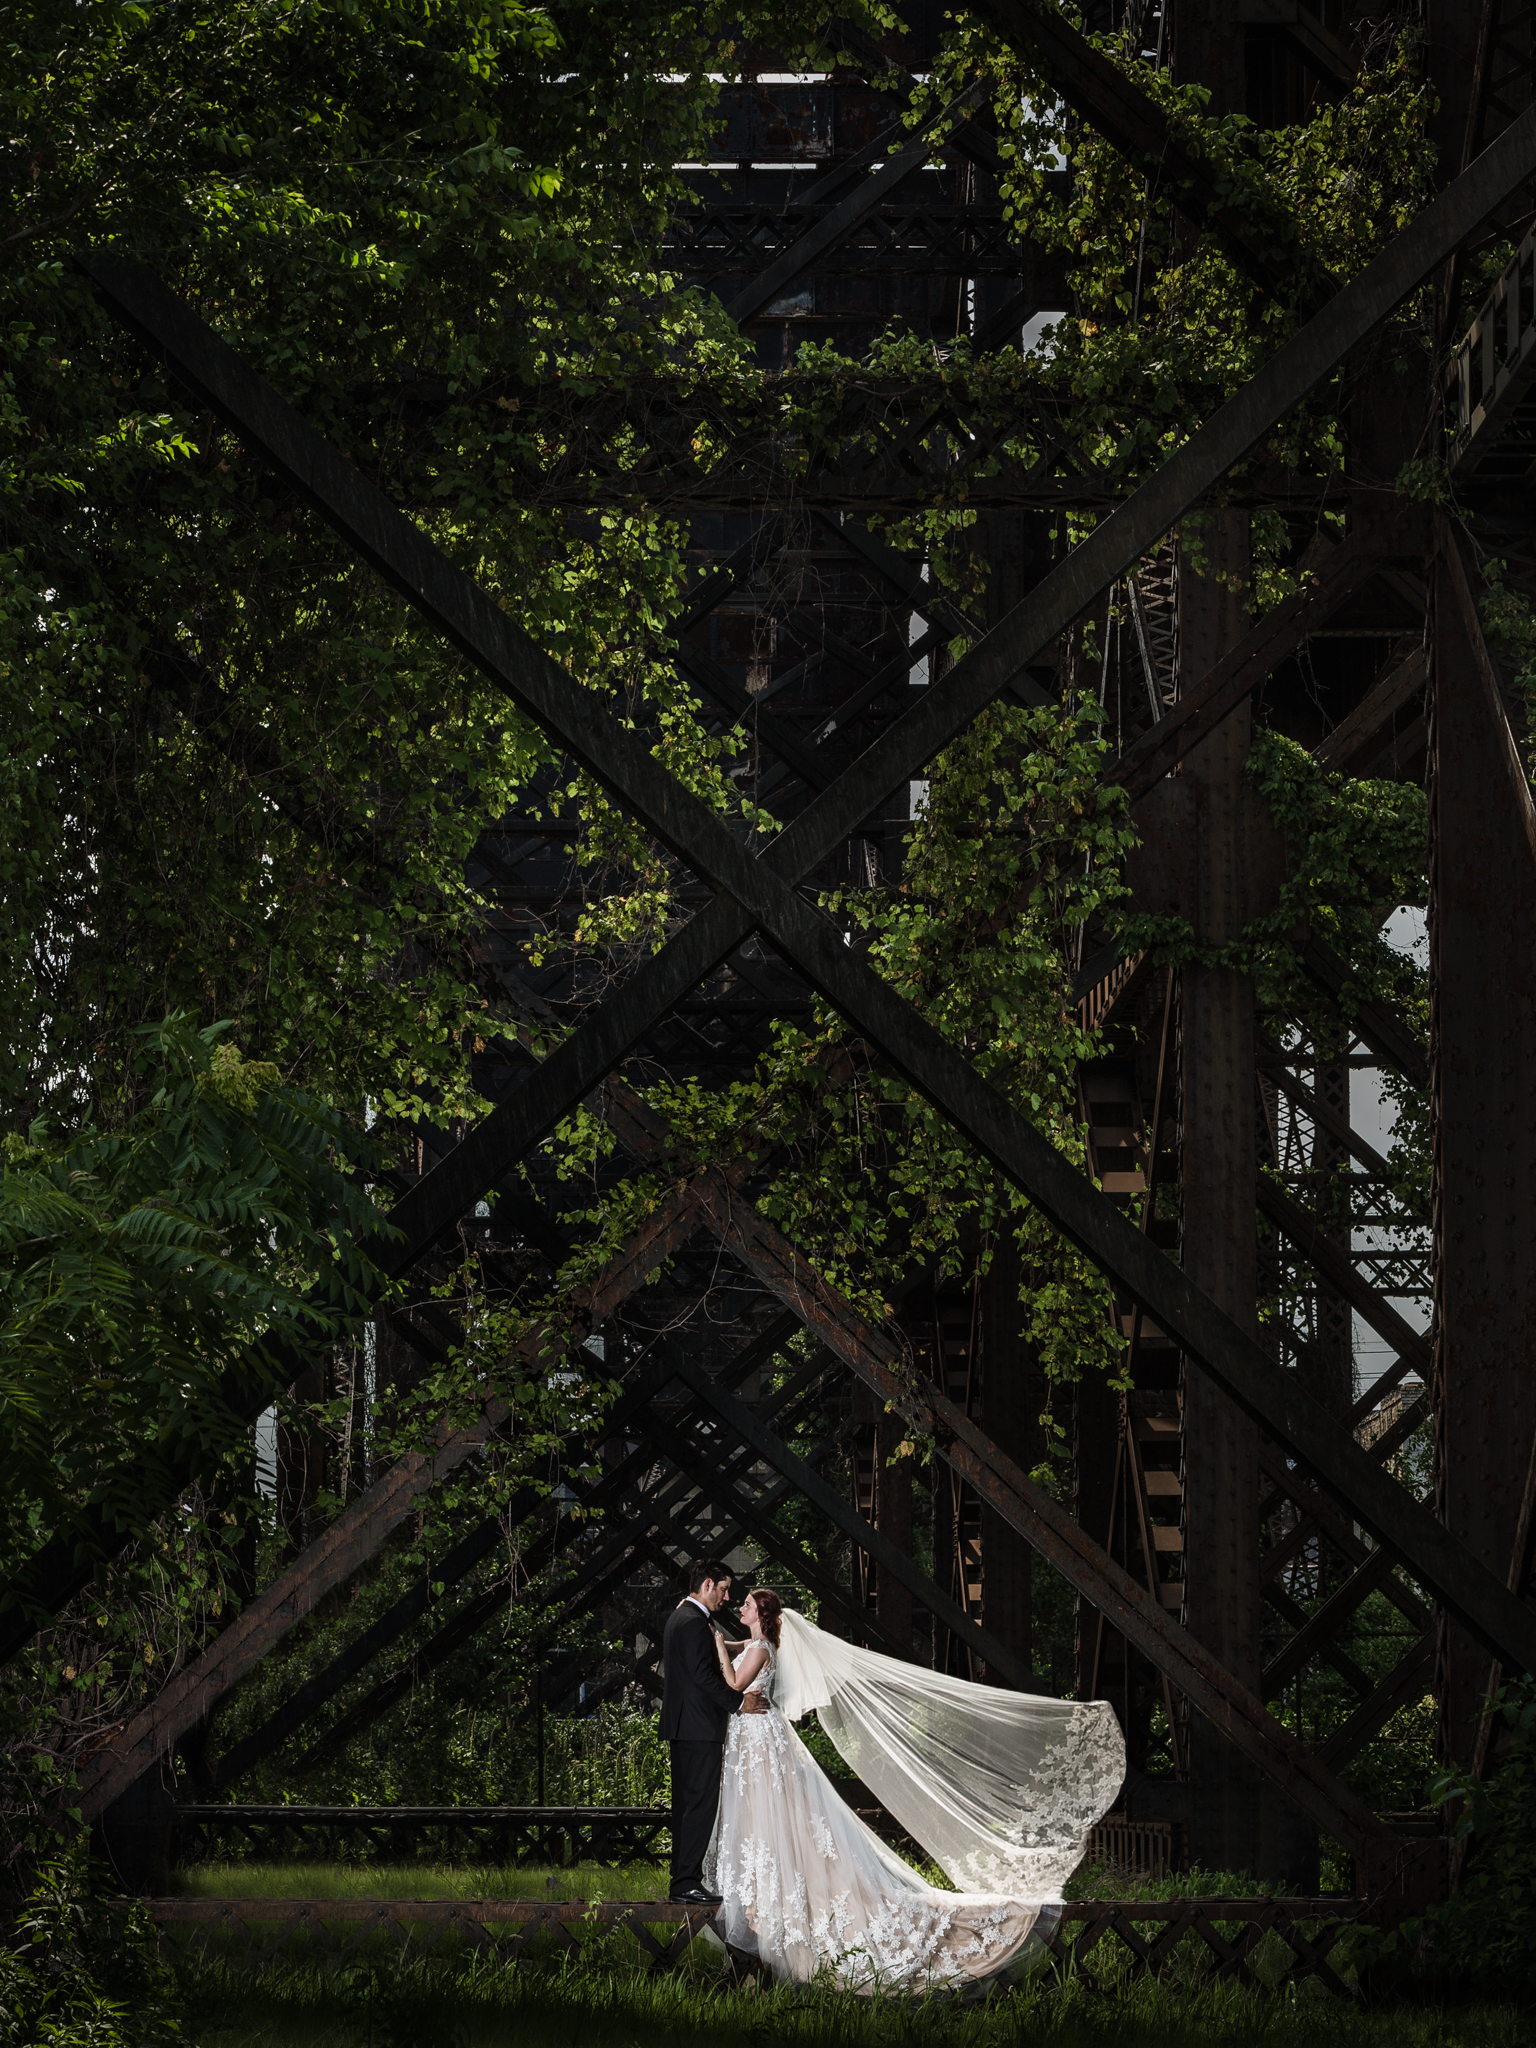 wedding-photographer-new-hampshire-boston-destination-art-artistic-chris-keeley-photography-dover-nh02.jpg